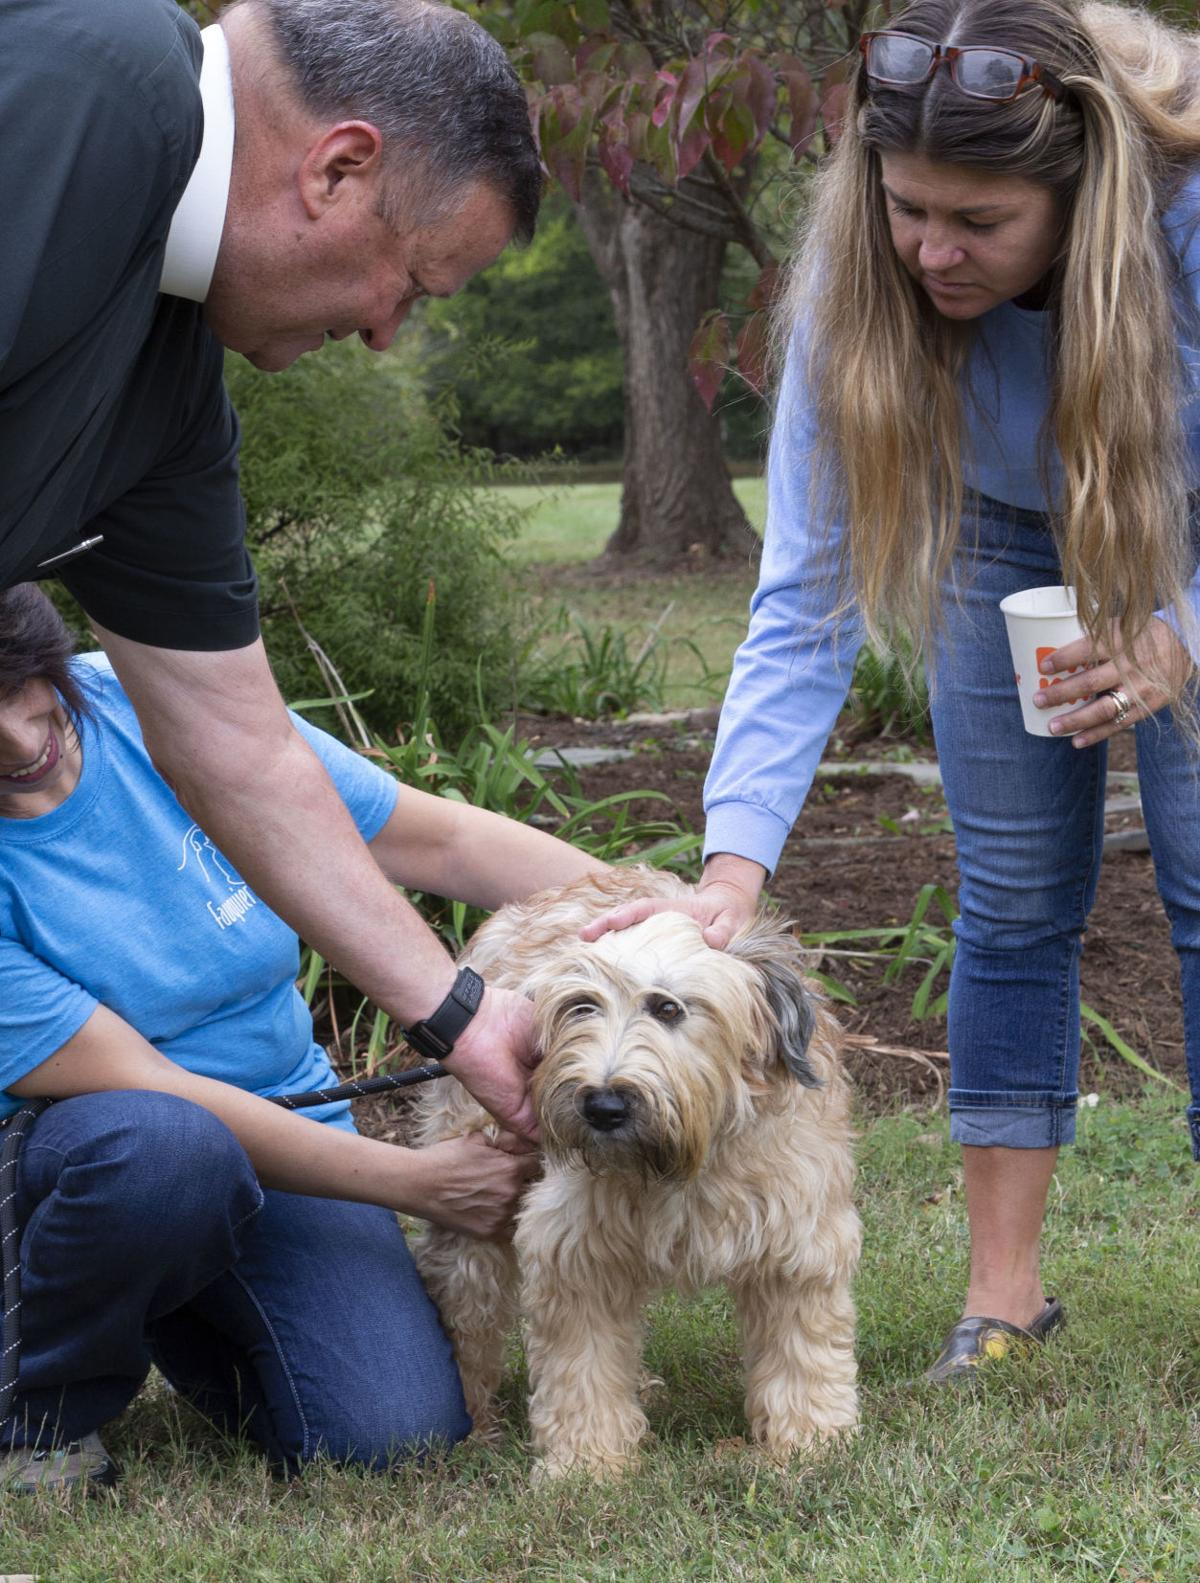 photo_ft_news blessing of the animals 1_101619.jpg